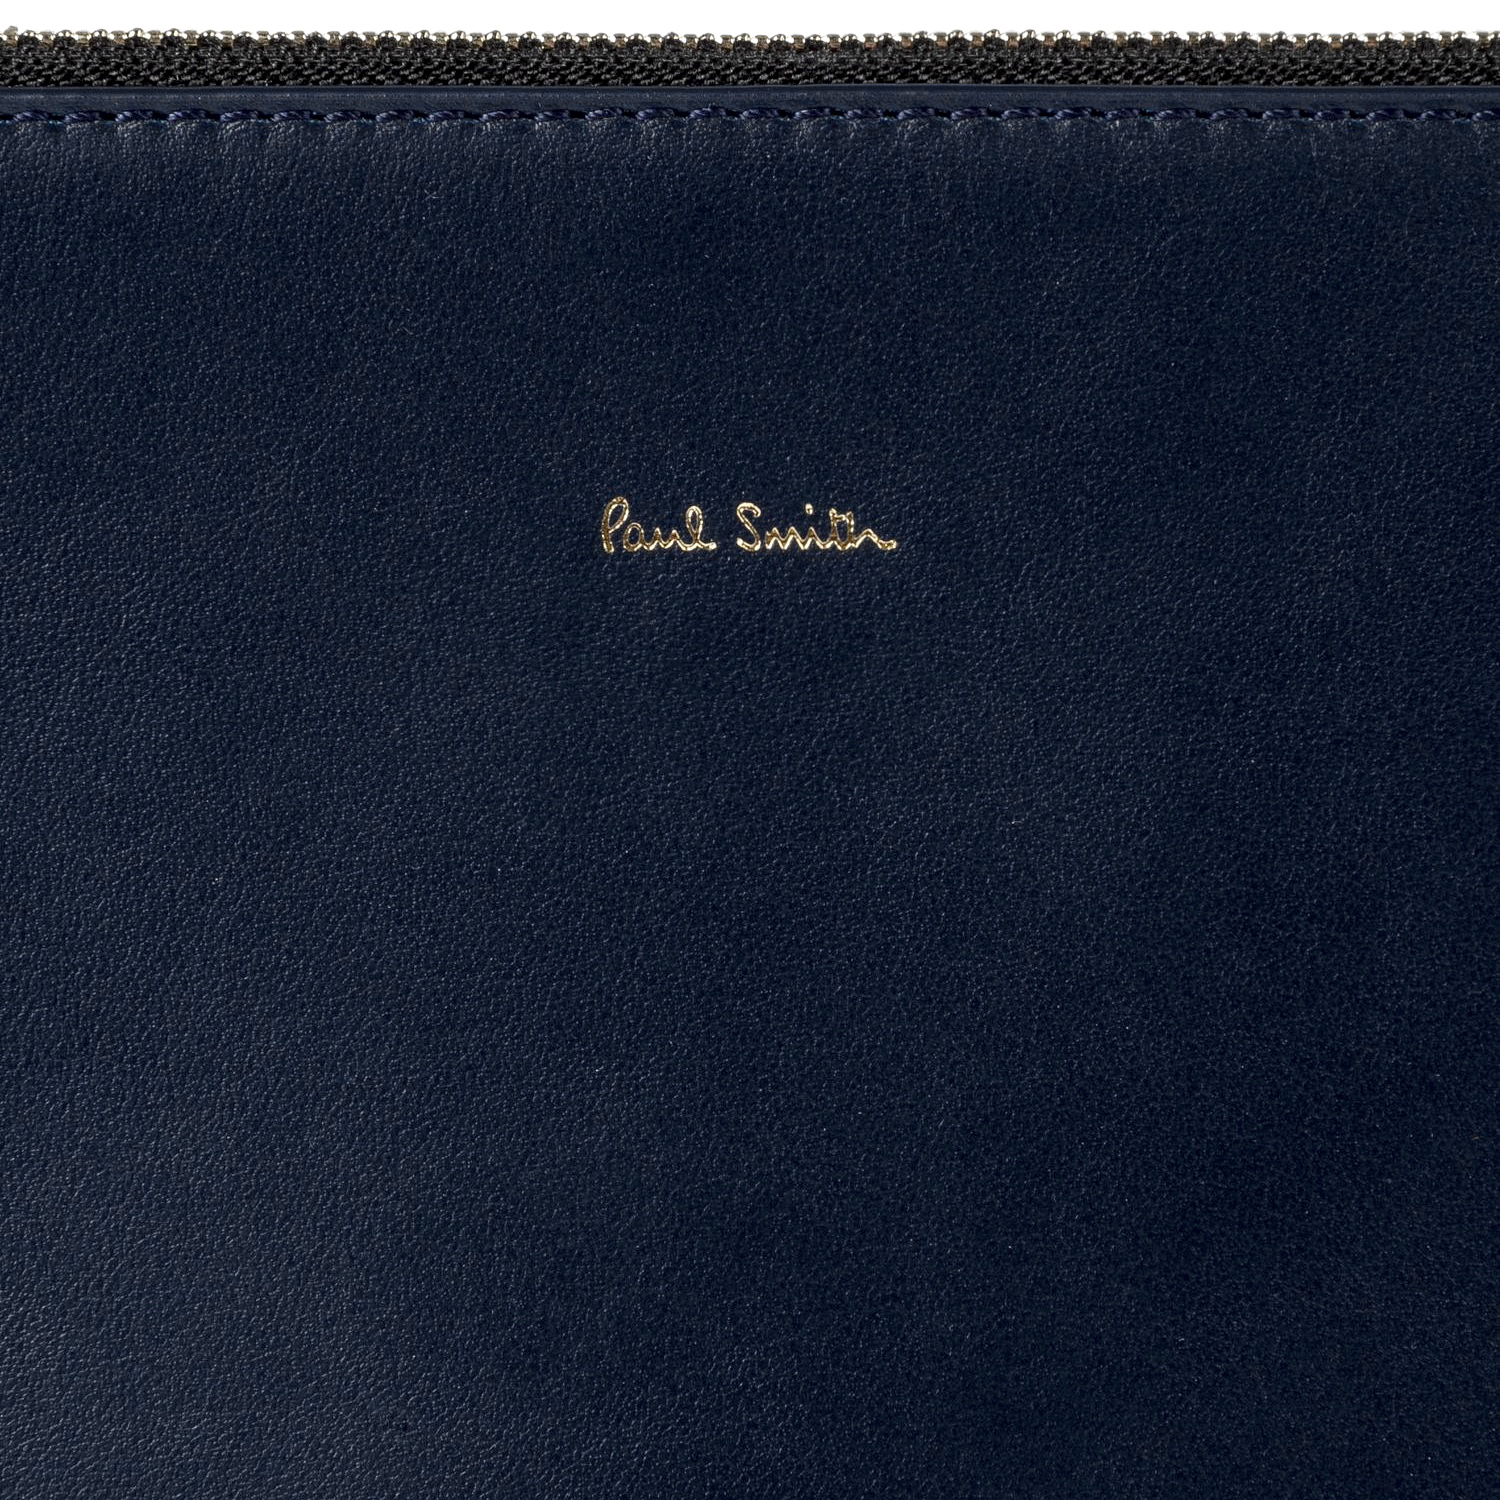 paul-smith-navy-Navy-Concertina-Bright-Stripe-Leather-Document-Pouch (5).jpg